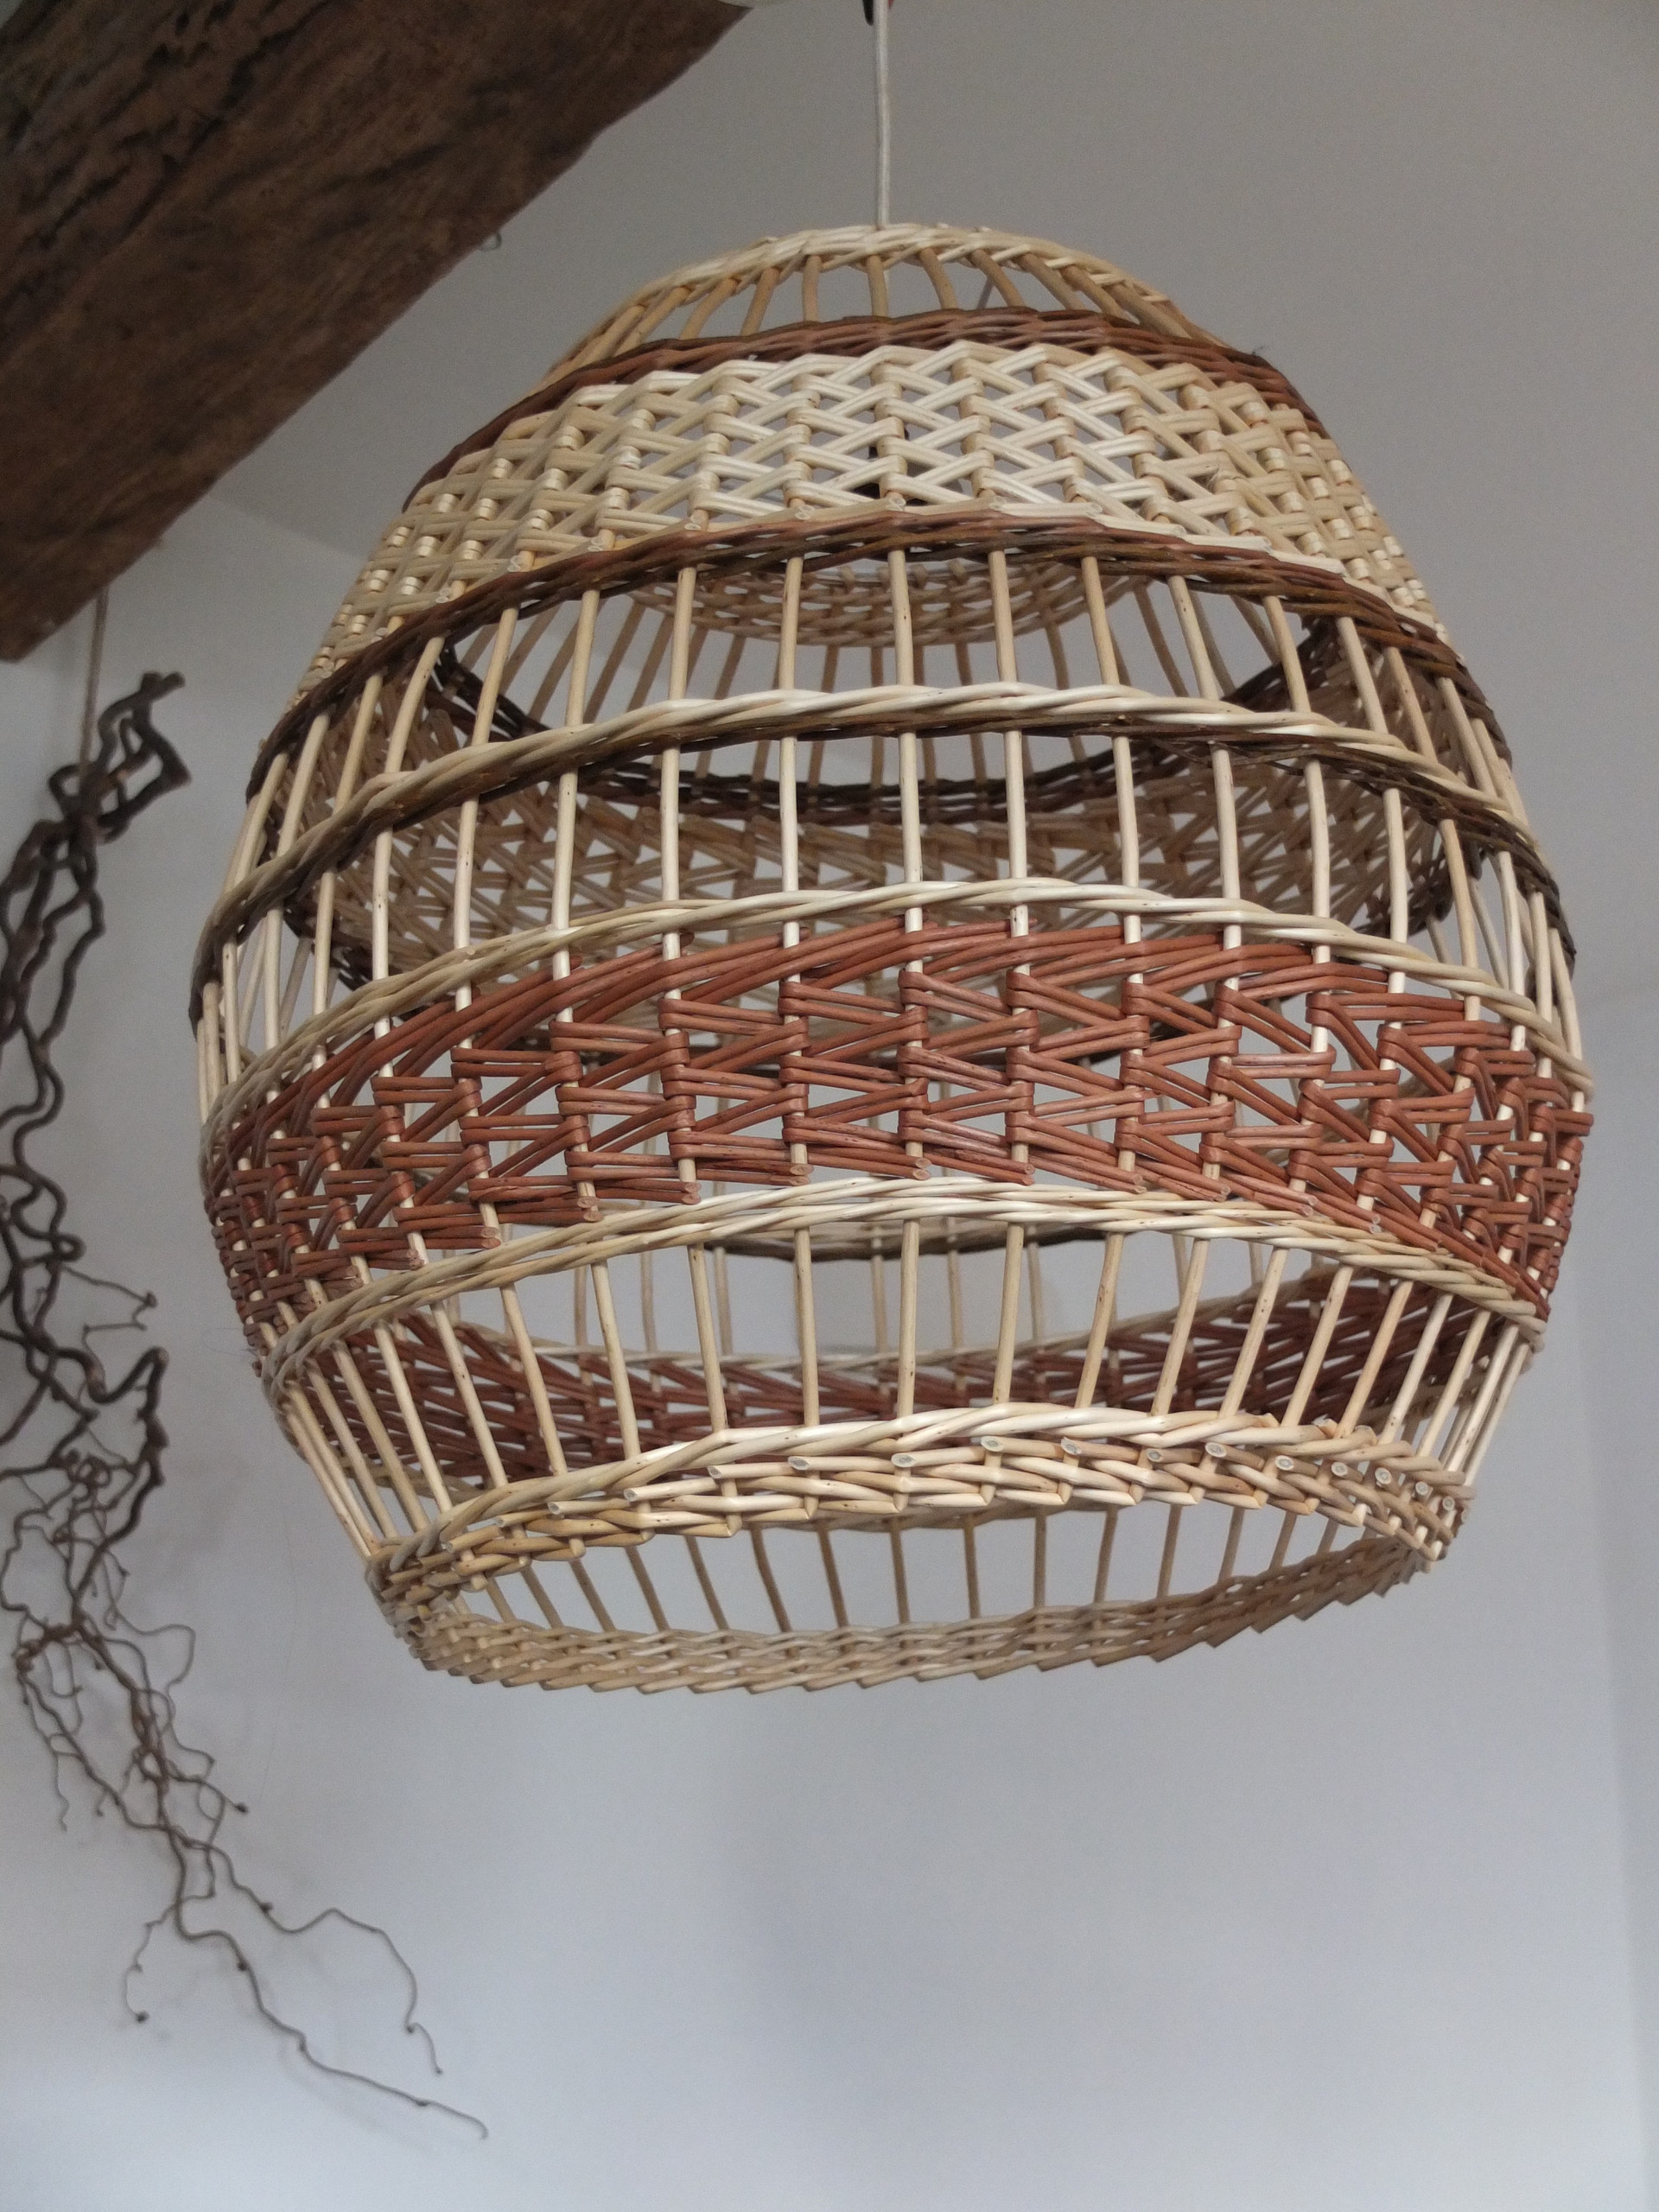 Handwoven willow lampshade in neutrals